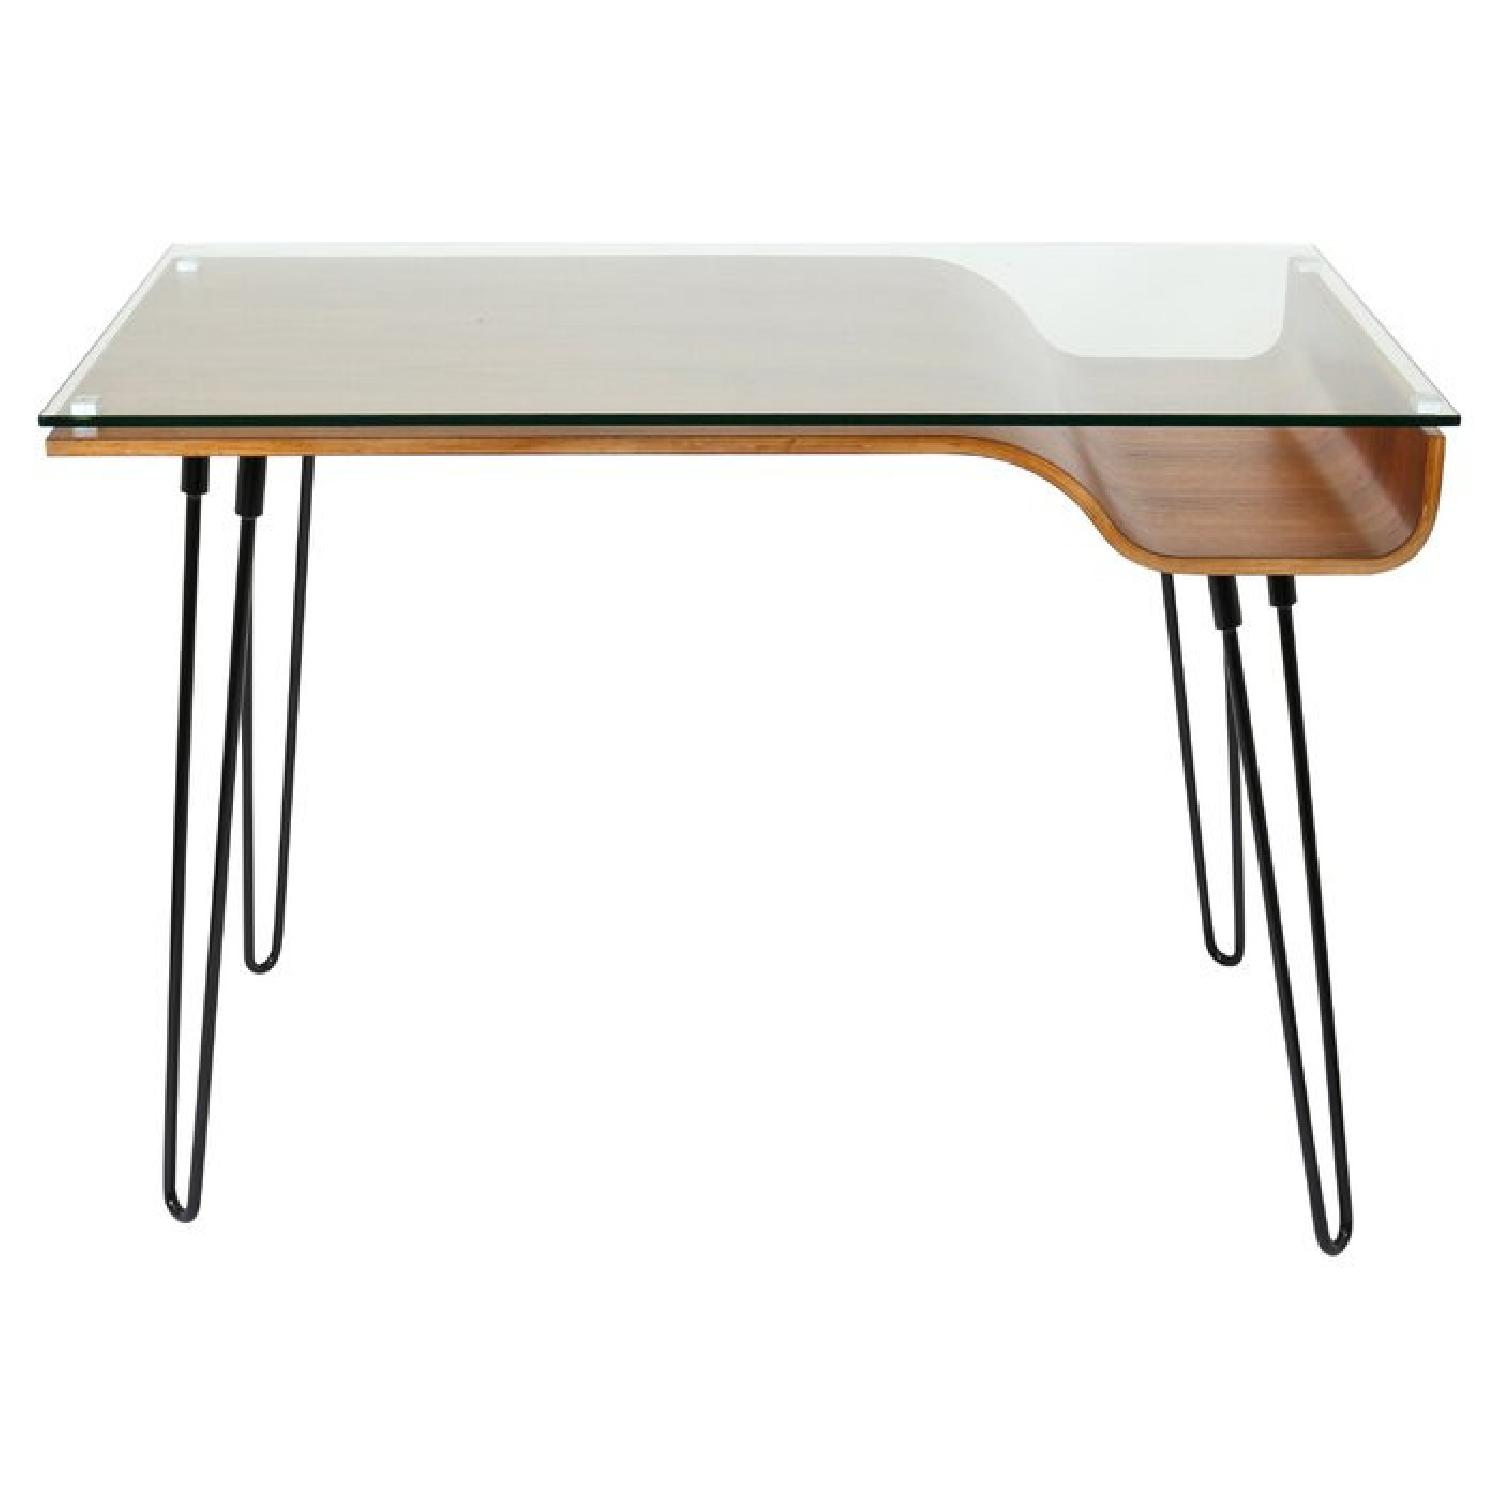 Sleek Wood & Glass Desk - image-0